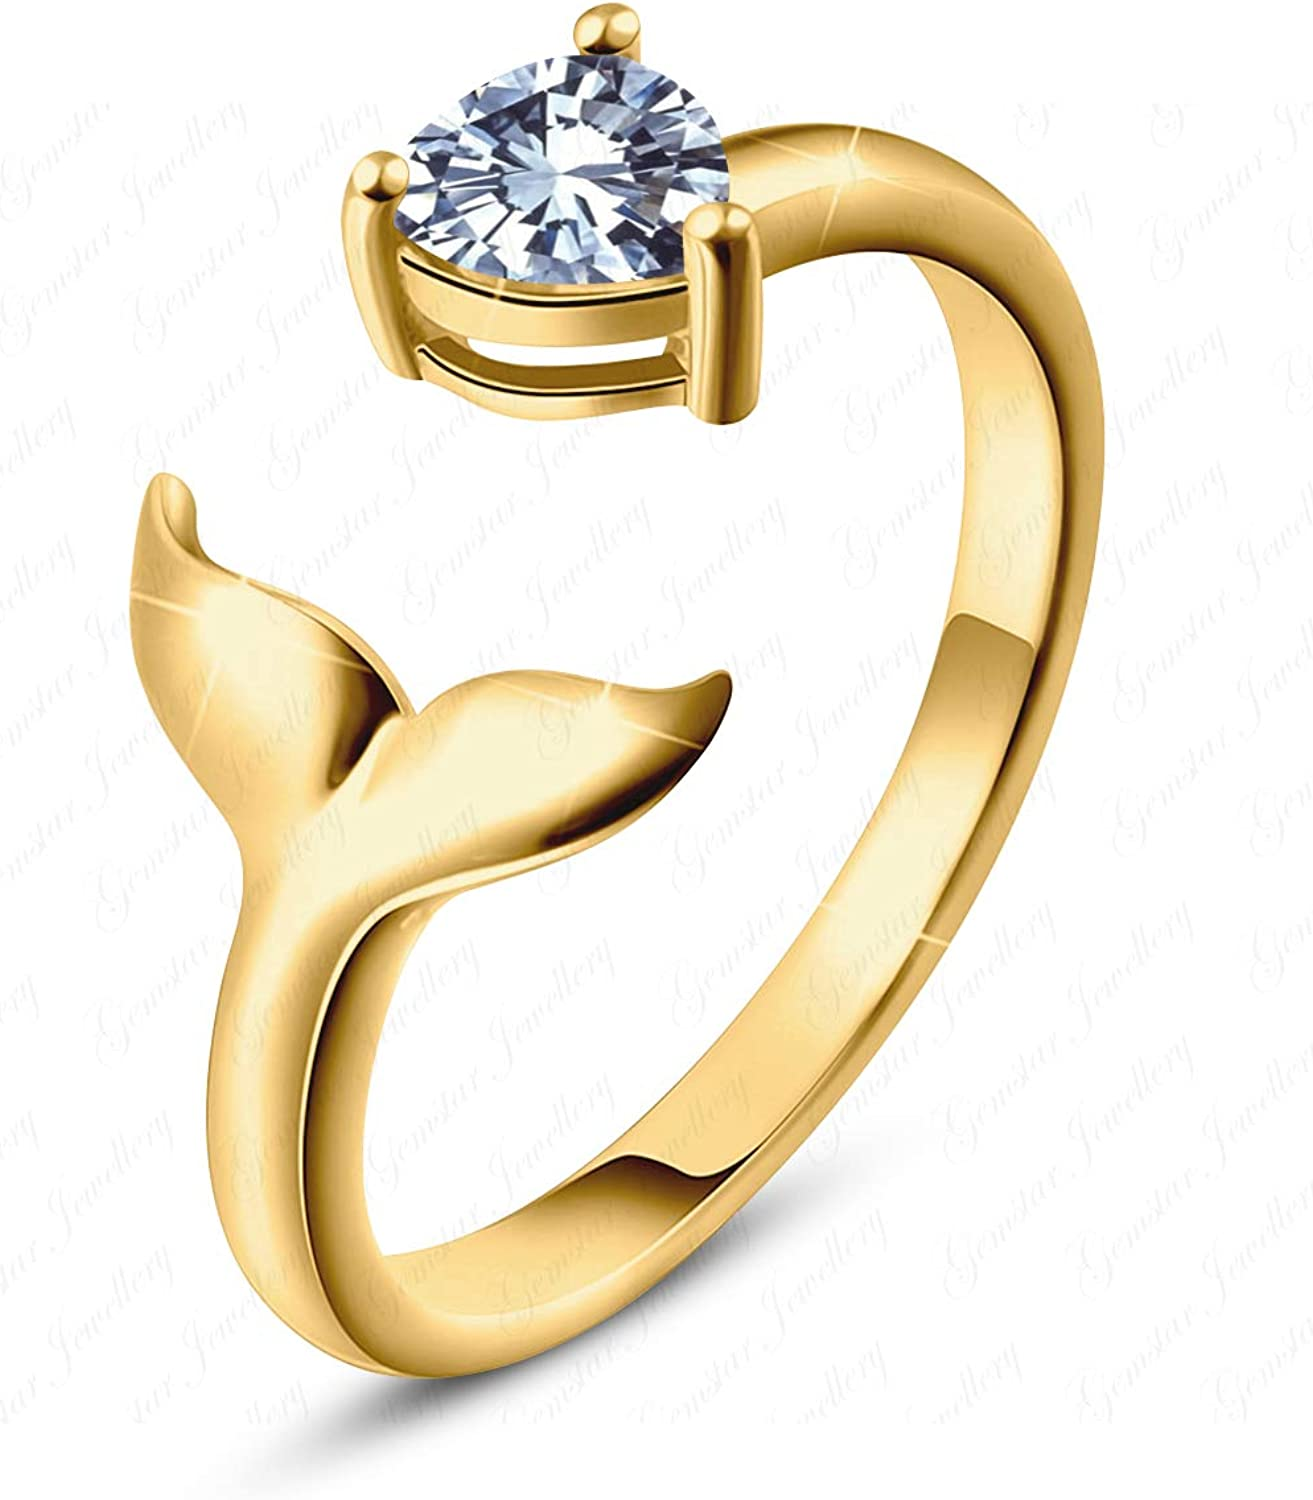 Gemstar Jewellery White Sim Diamond Adjustable Mermaid Toe Ring in 925 Silver 14k Yellow Gold Filled